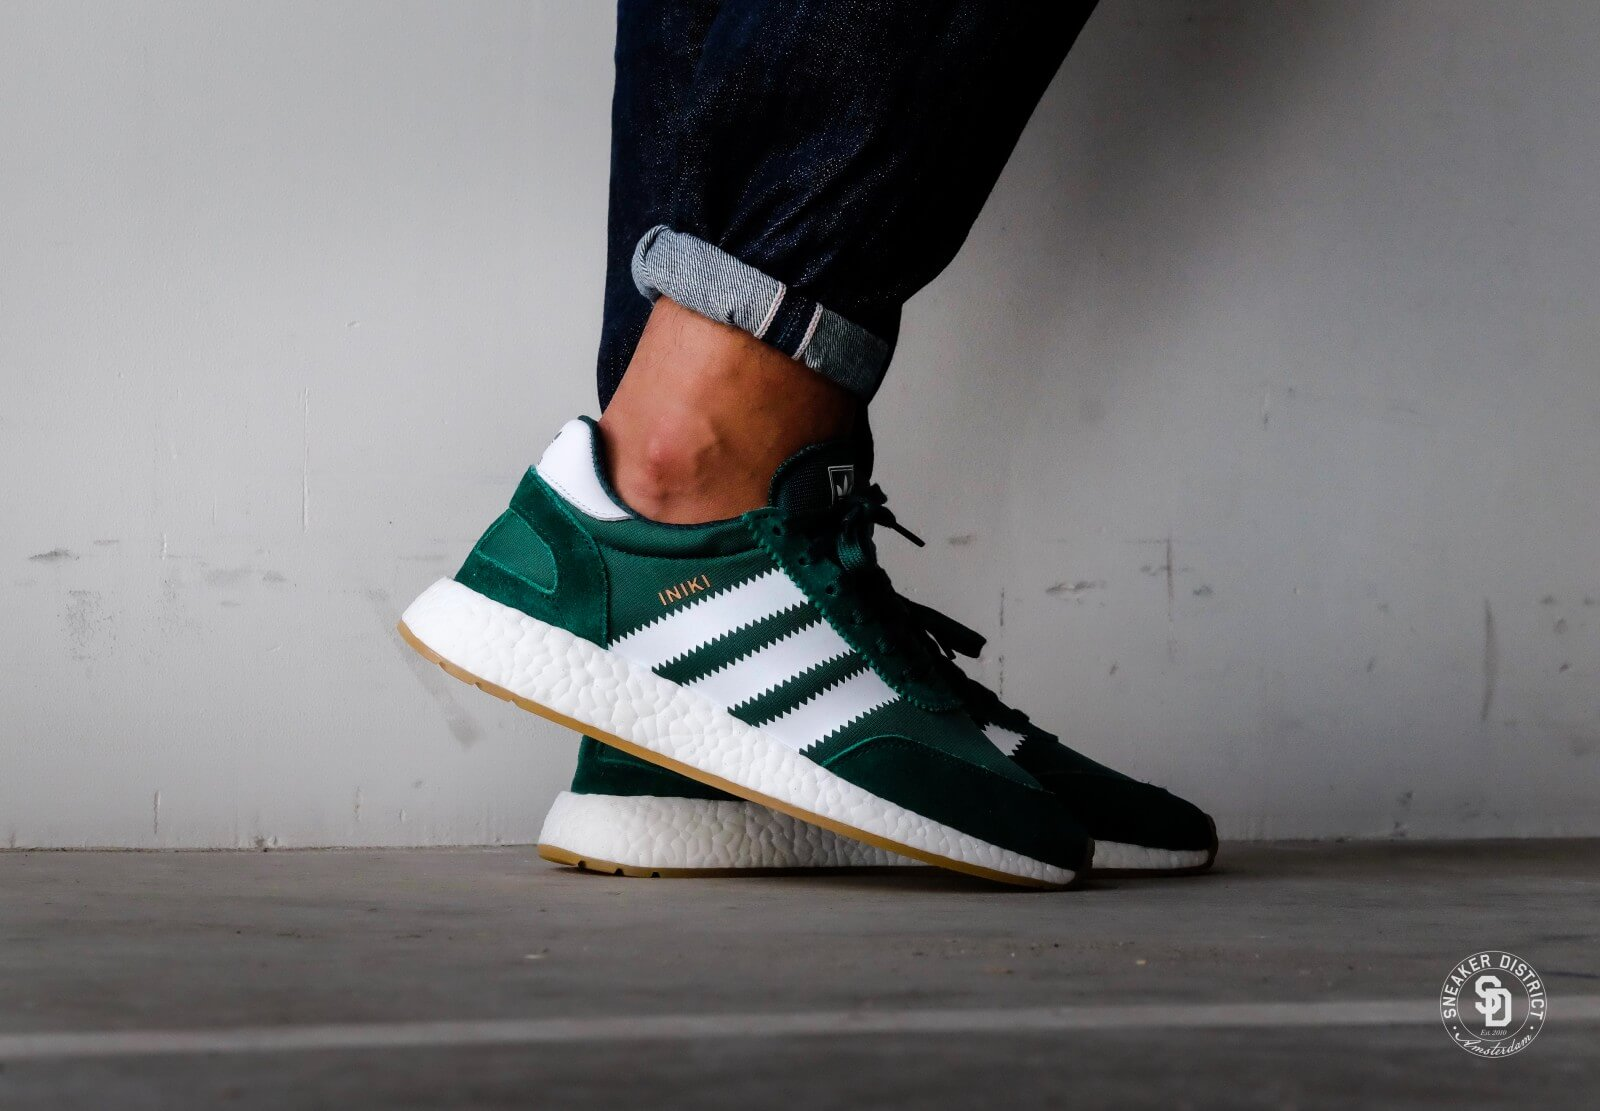 lacer dans style attrayant gamme exclusive adidas iniki vert